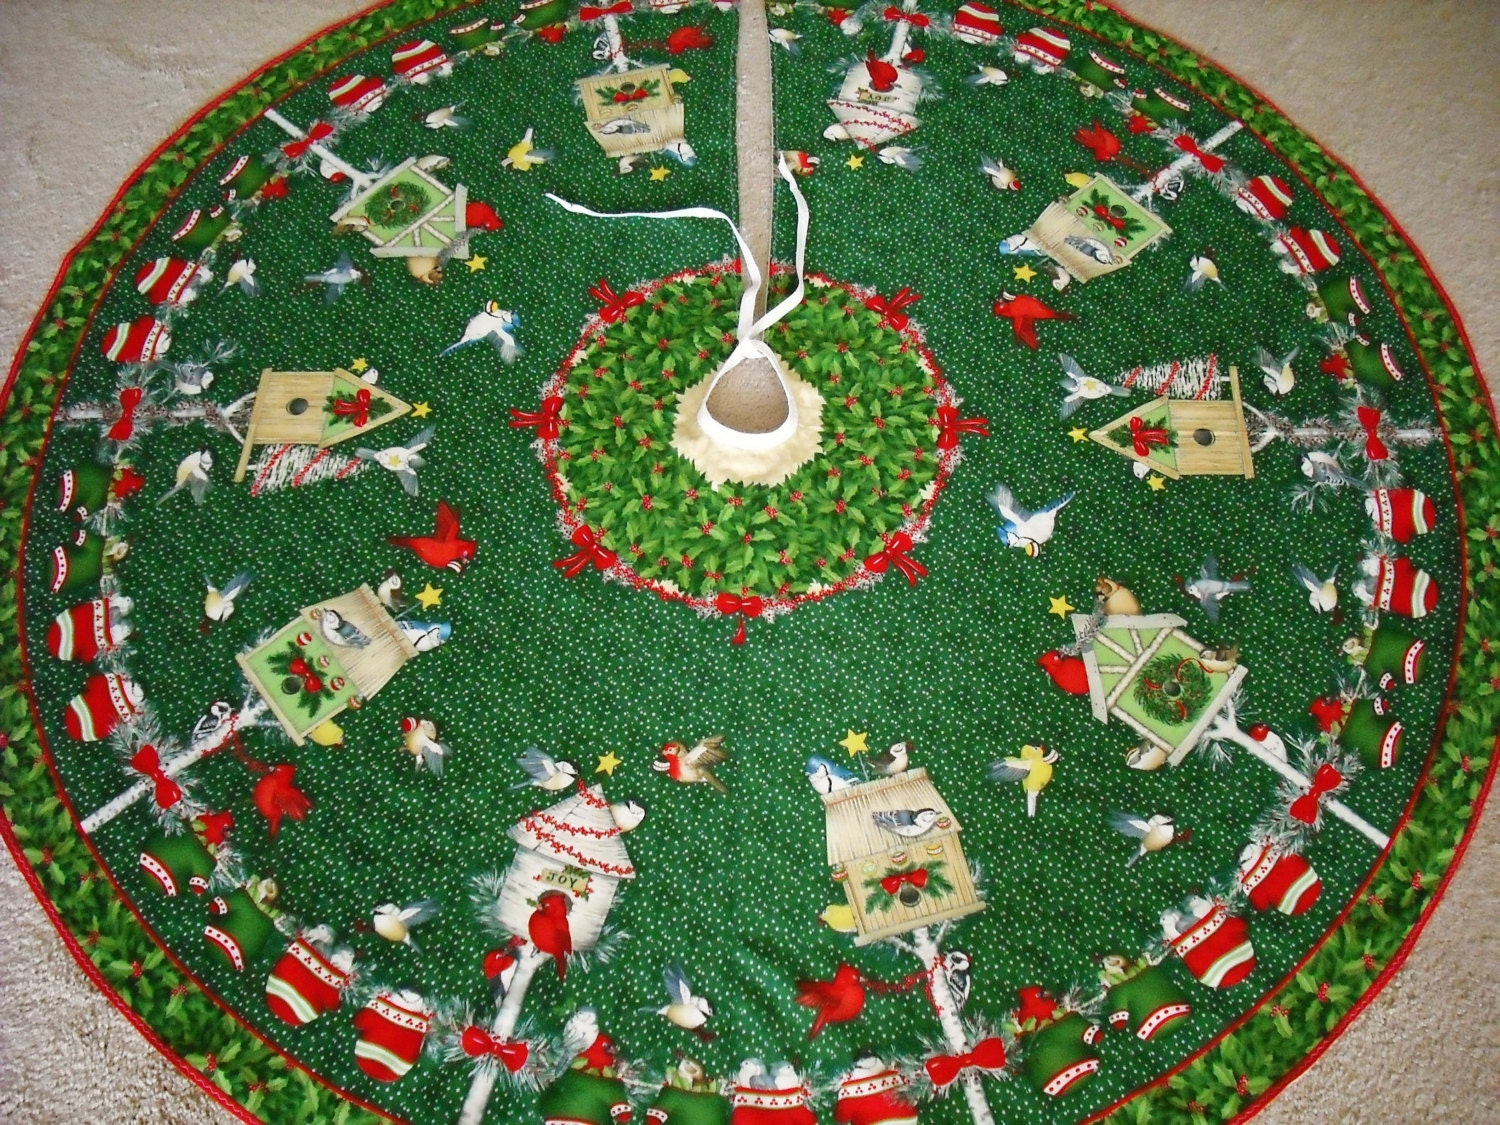 Christmas tree skirt handmade birds bird houses cardinals